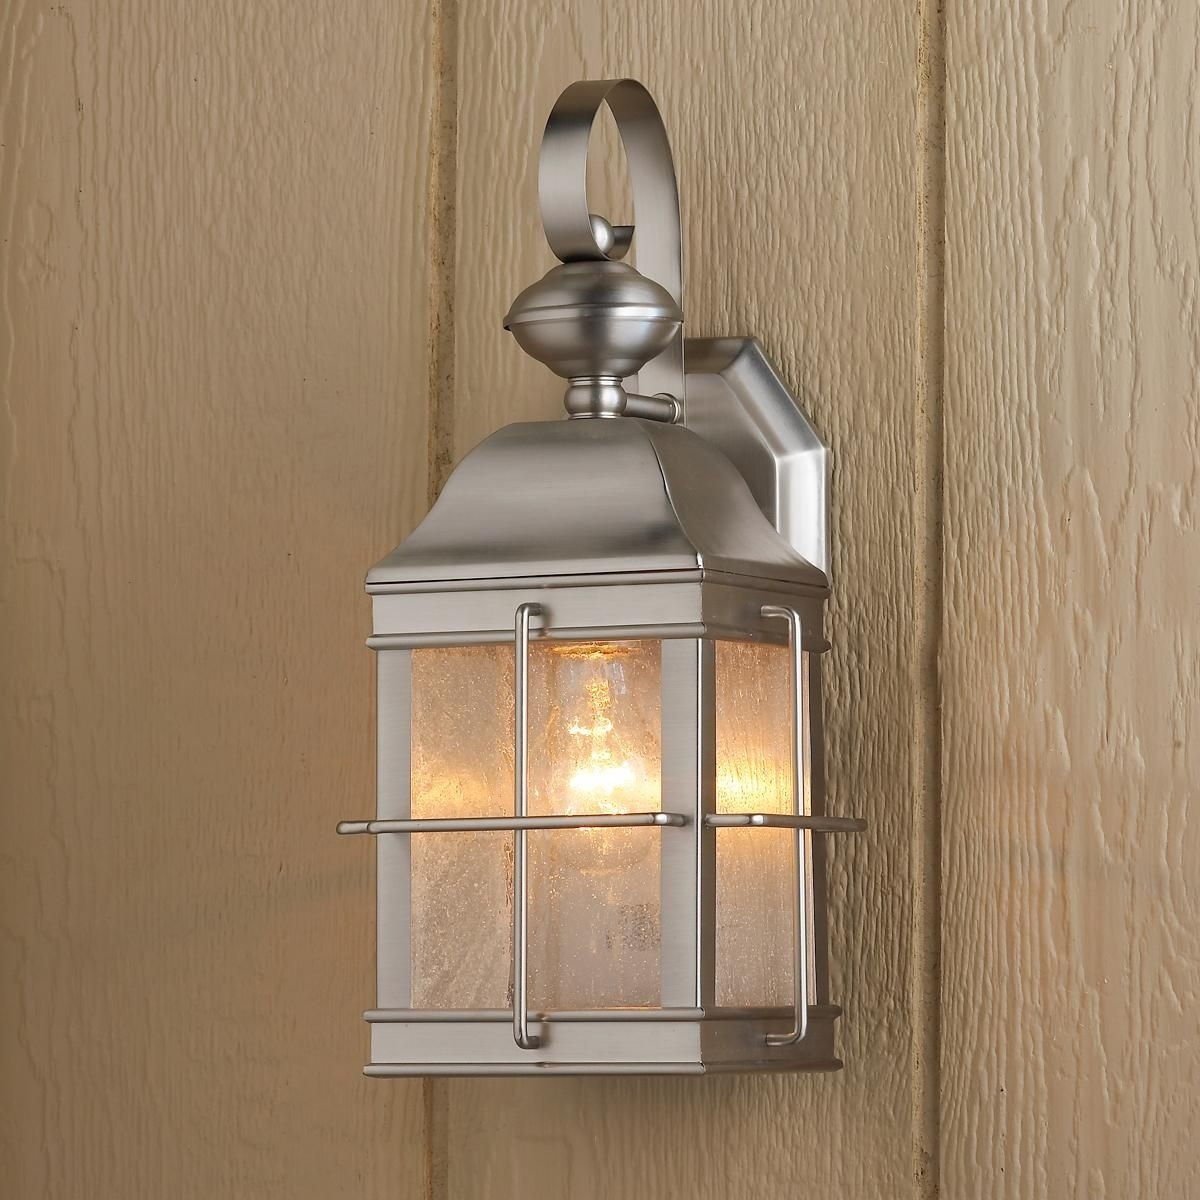 Brushed Nickel Outdoor Lights Elegant Nautical Inspired Lantern Wall throughout Elegant Outdoor Lanterns (Image 3 of 20)